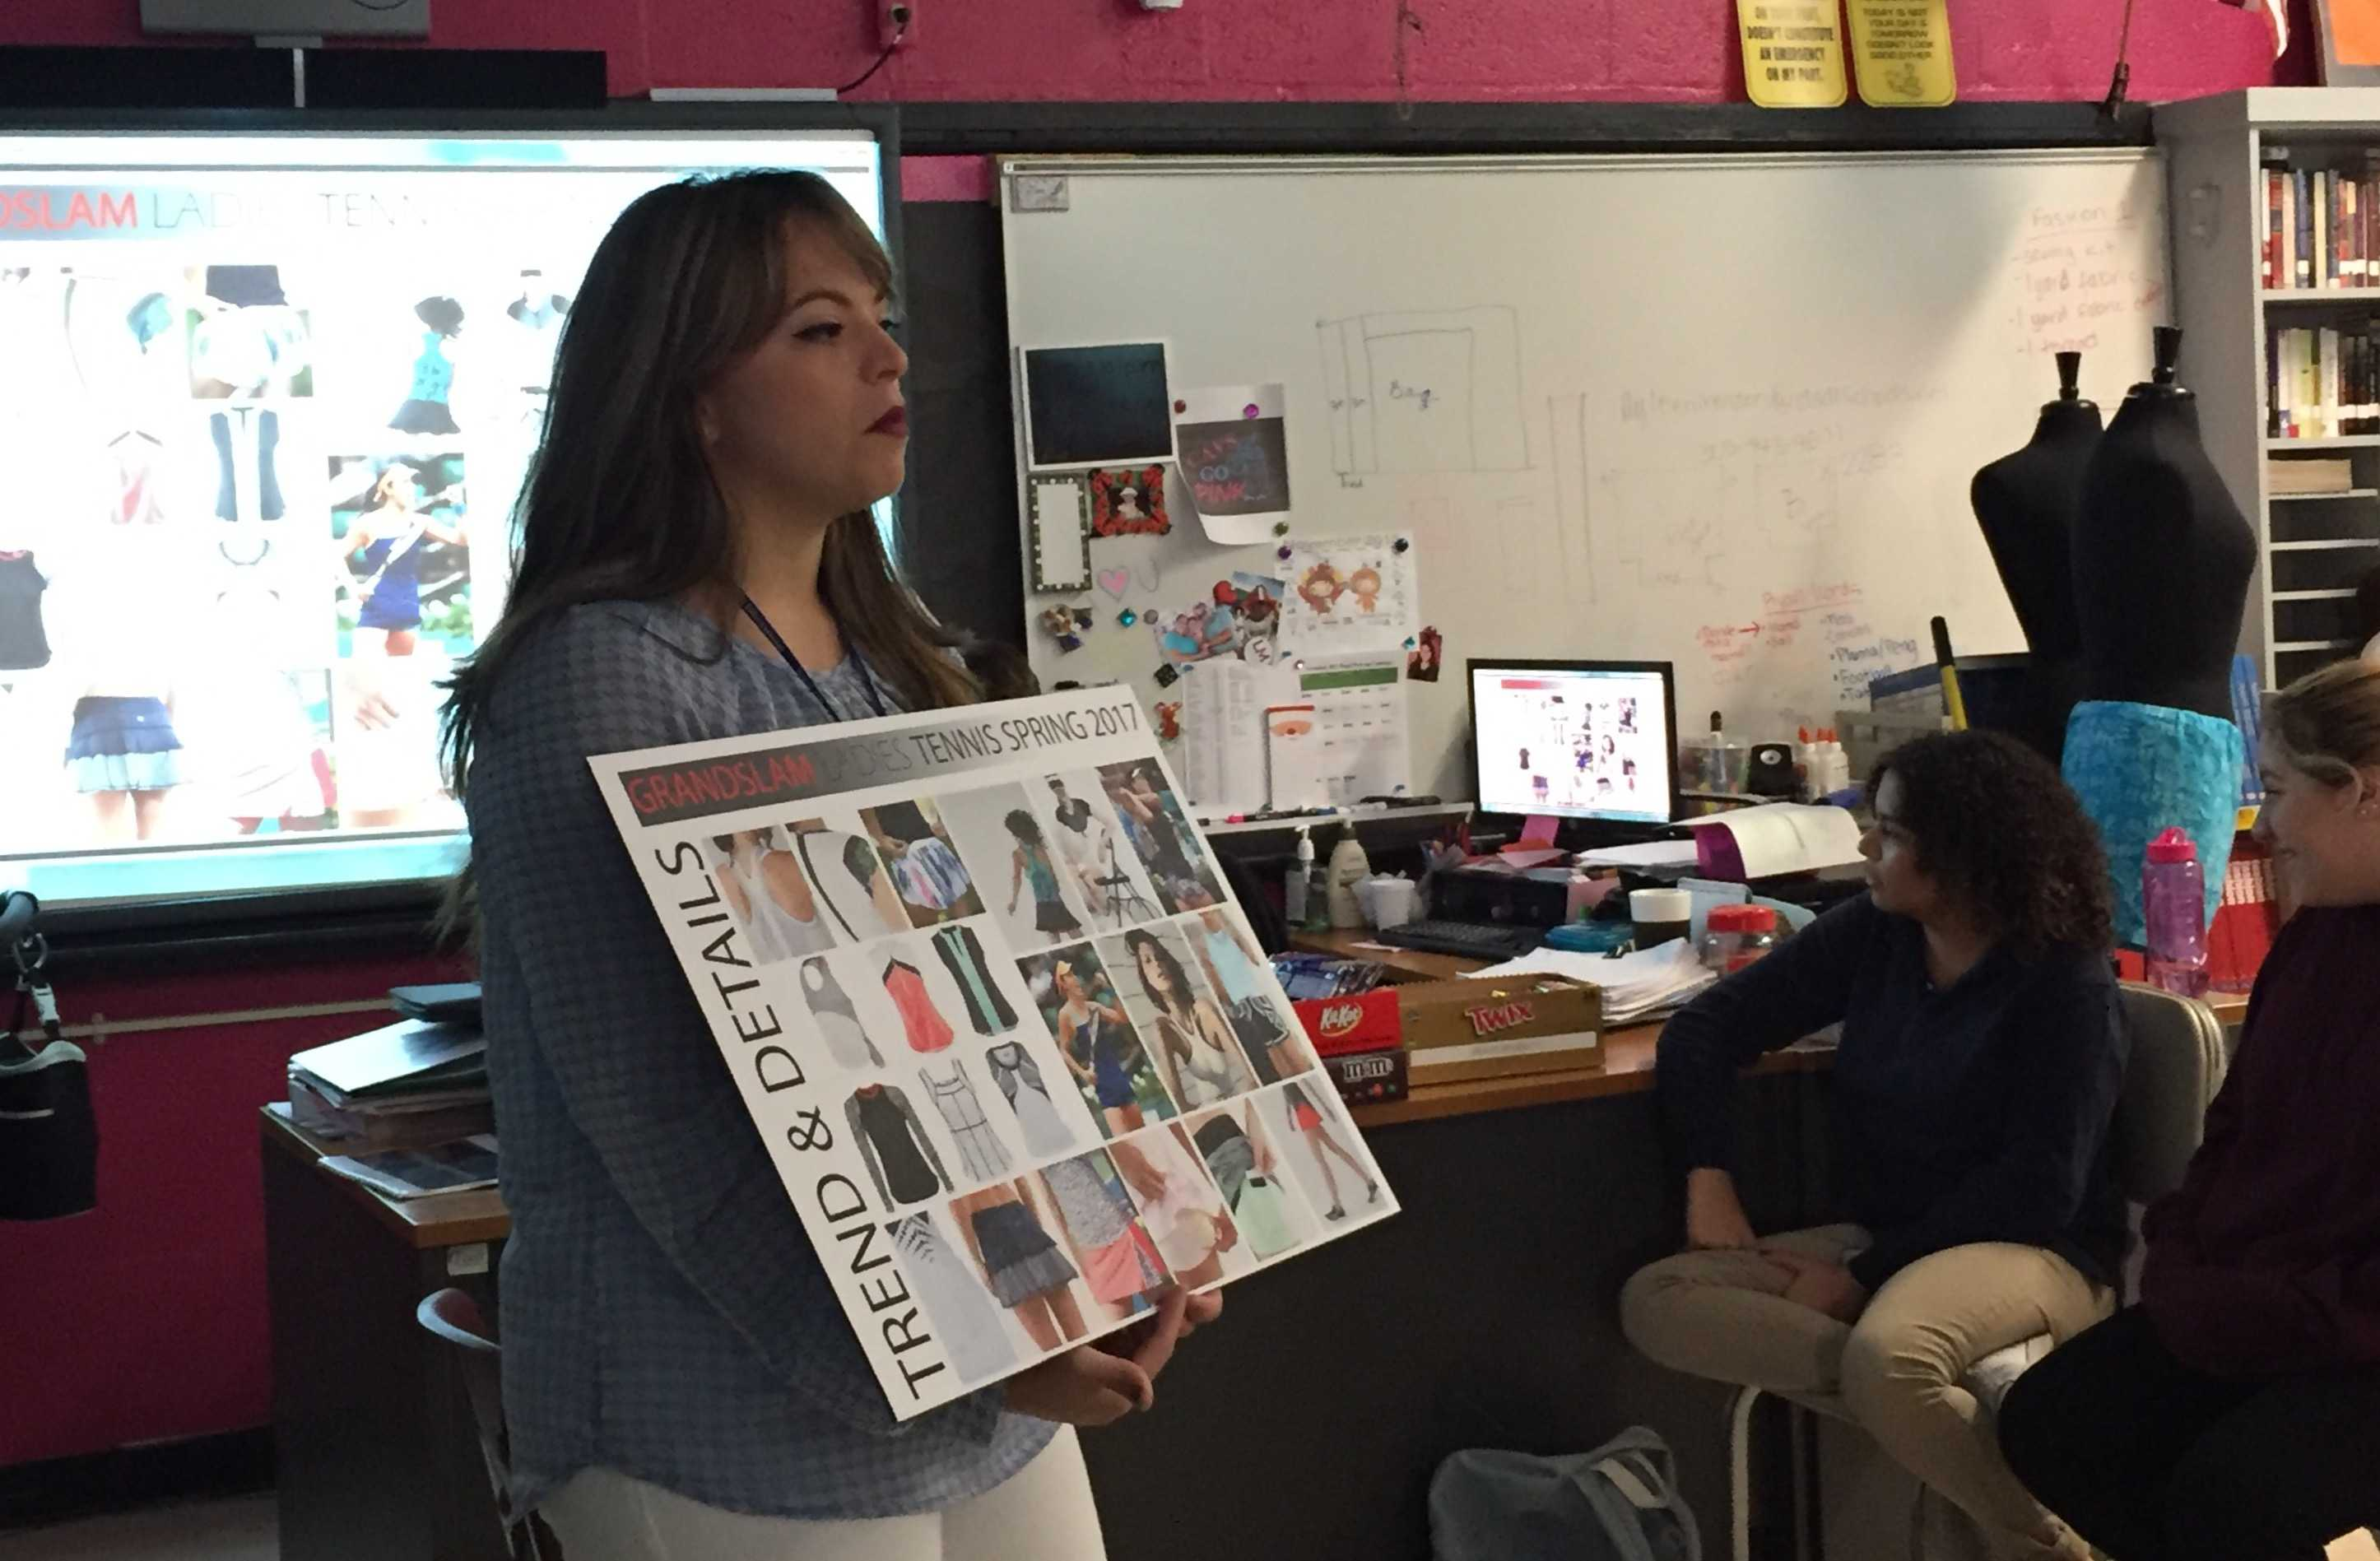 Perry Ellis fashion designer Natasha Rodriguez shares her expertise in the fashion industry with prospective students.